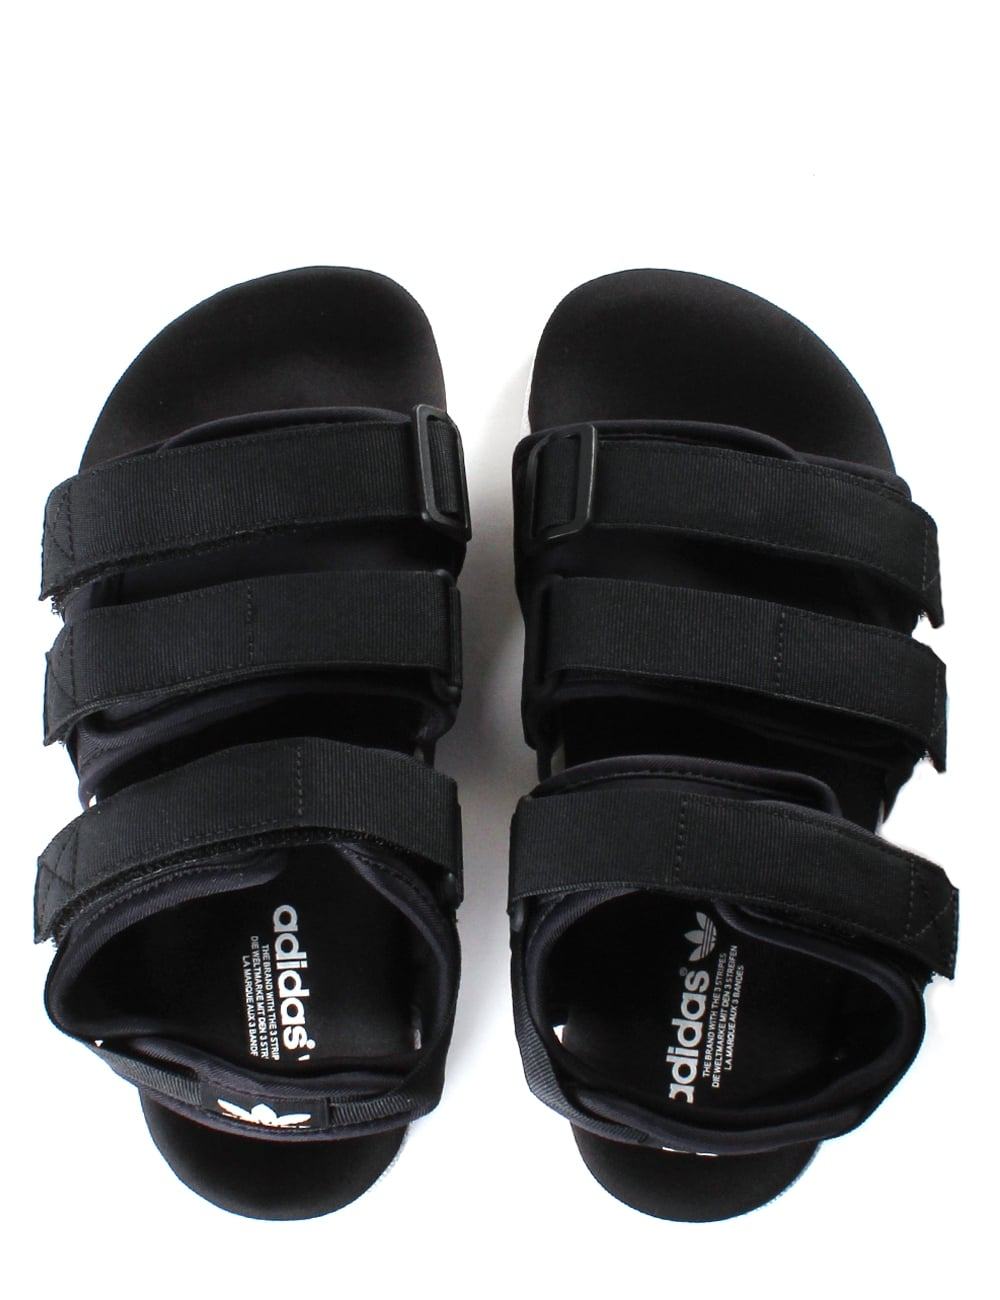 Buy womens adidas sandals adilette   OFF76% Discounted 20c25d668f